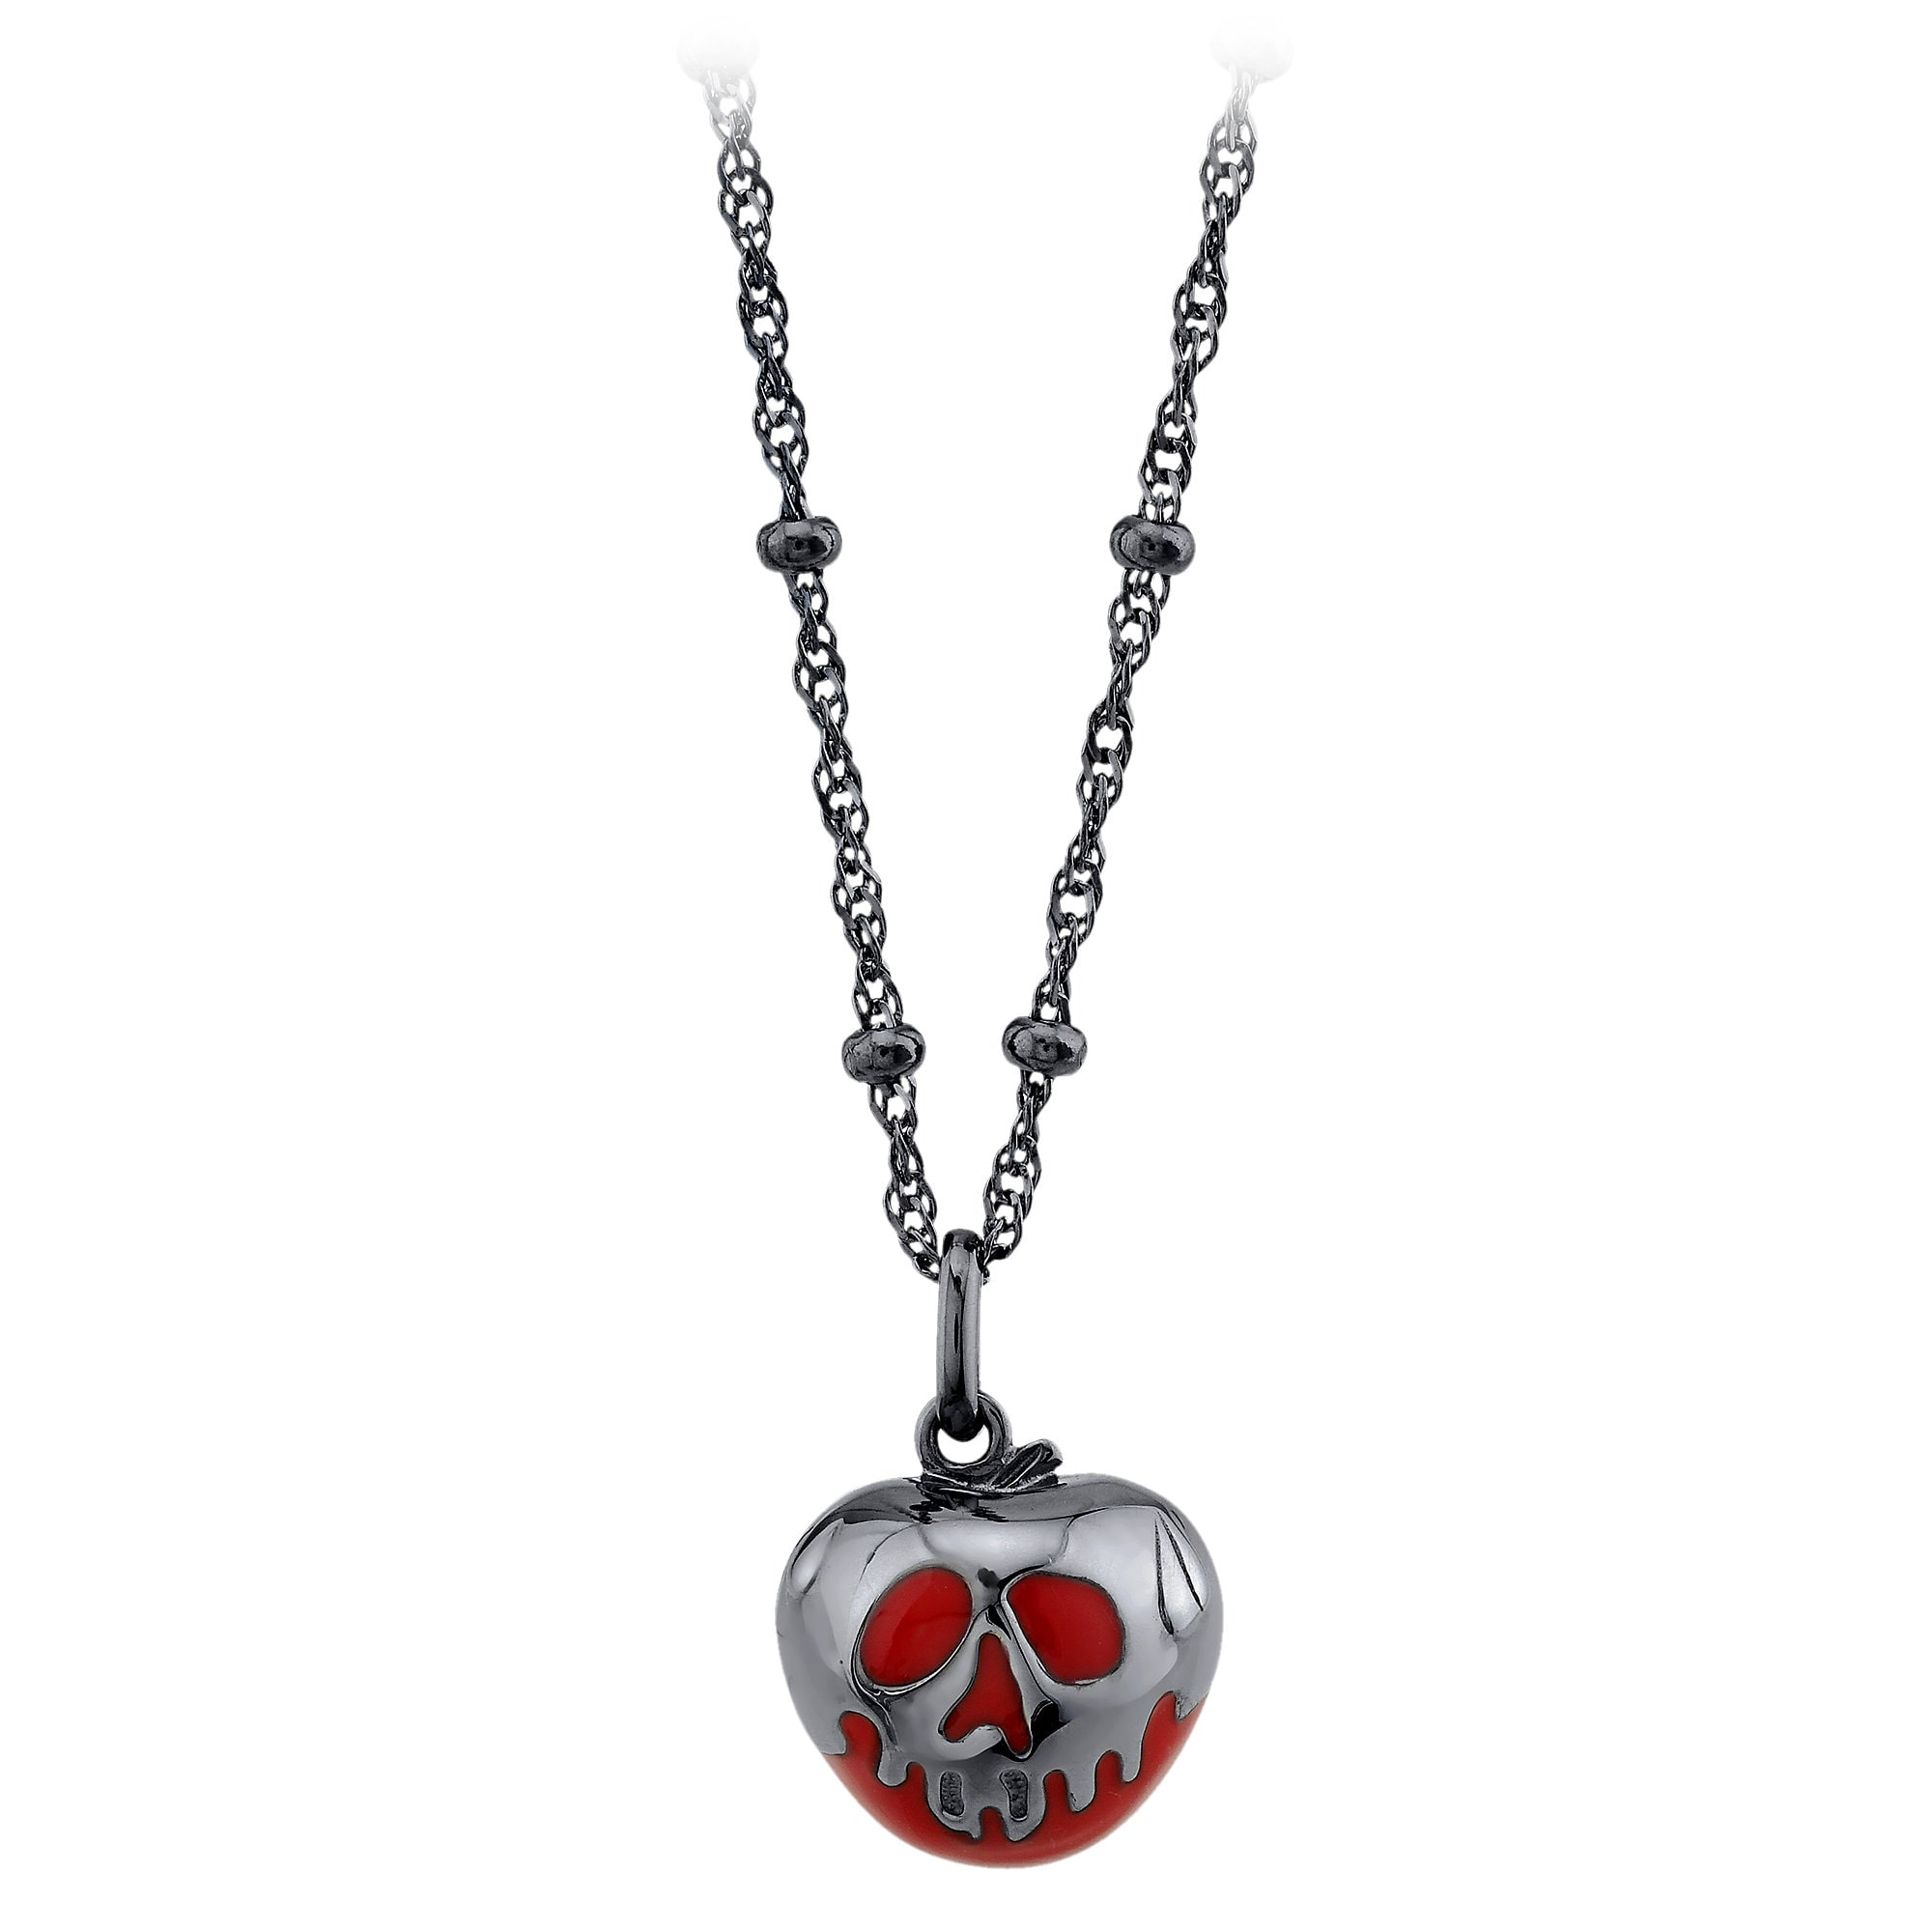 Poisoned Apple Necklace by RockLove - Snow White and the Seven Dwarfs